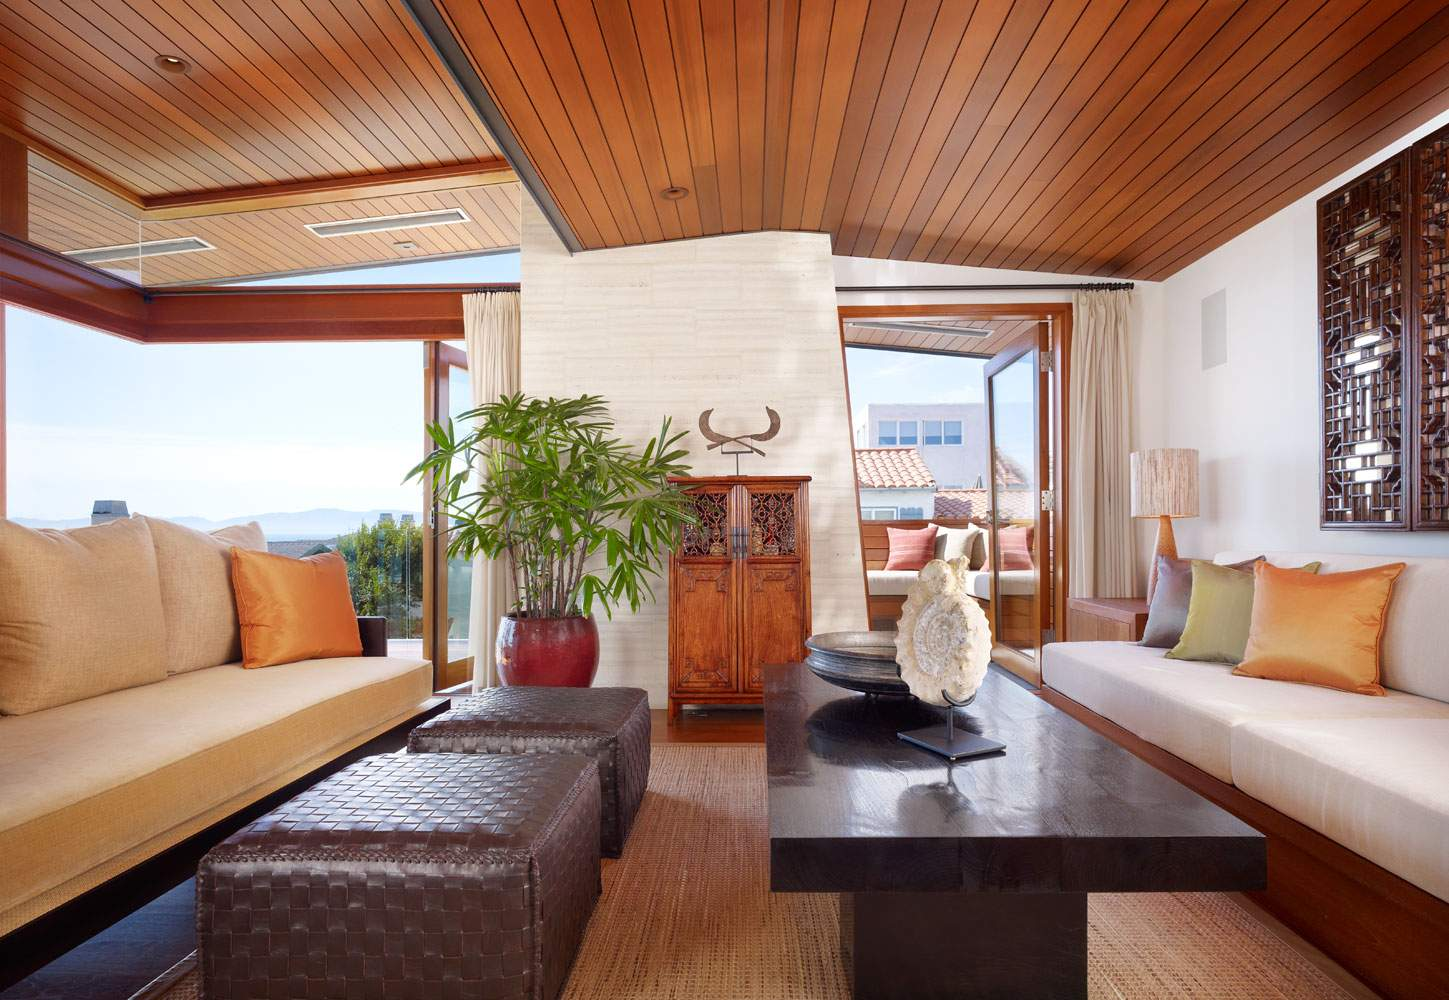 Beauty Natural Wooden Houses Your Apartment Living Room Decor Idea